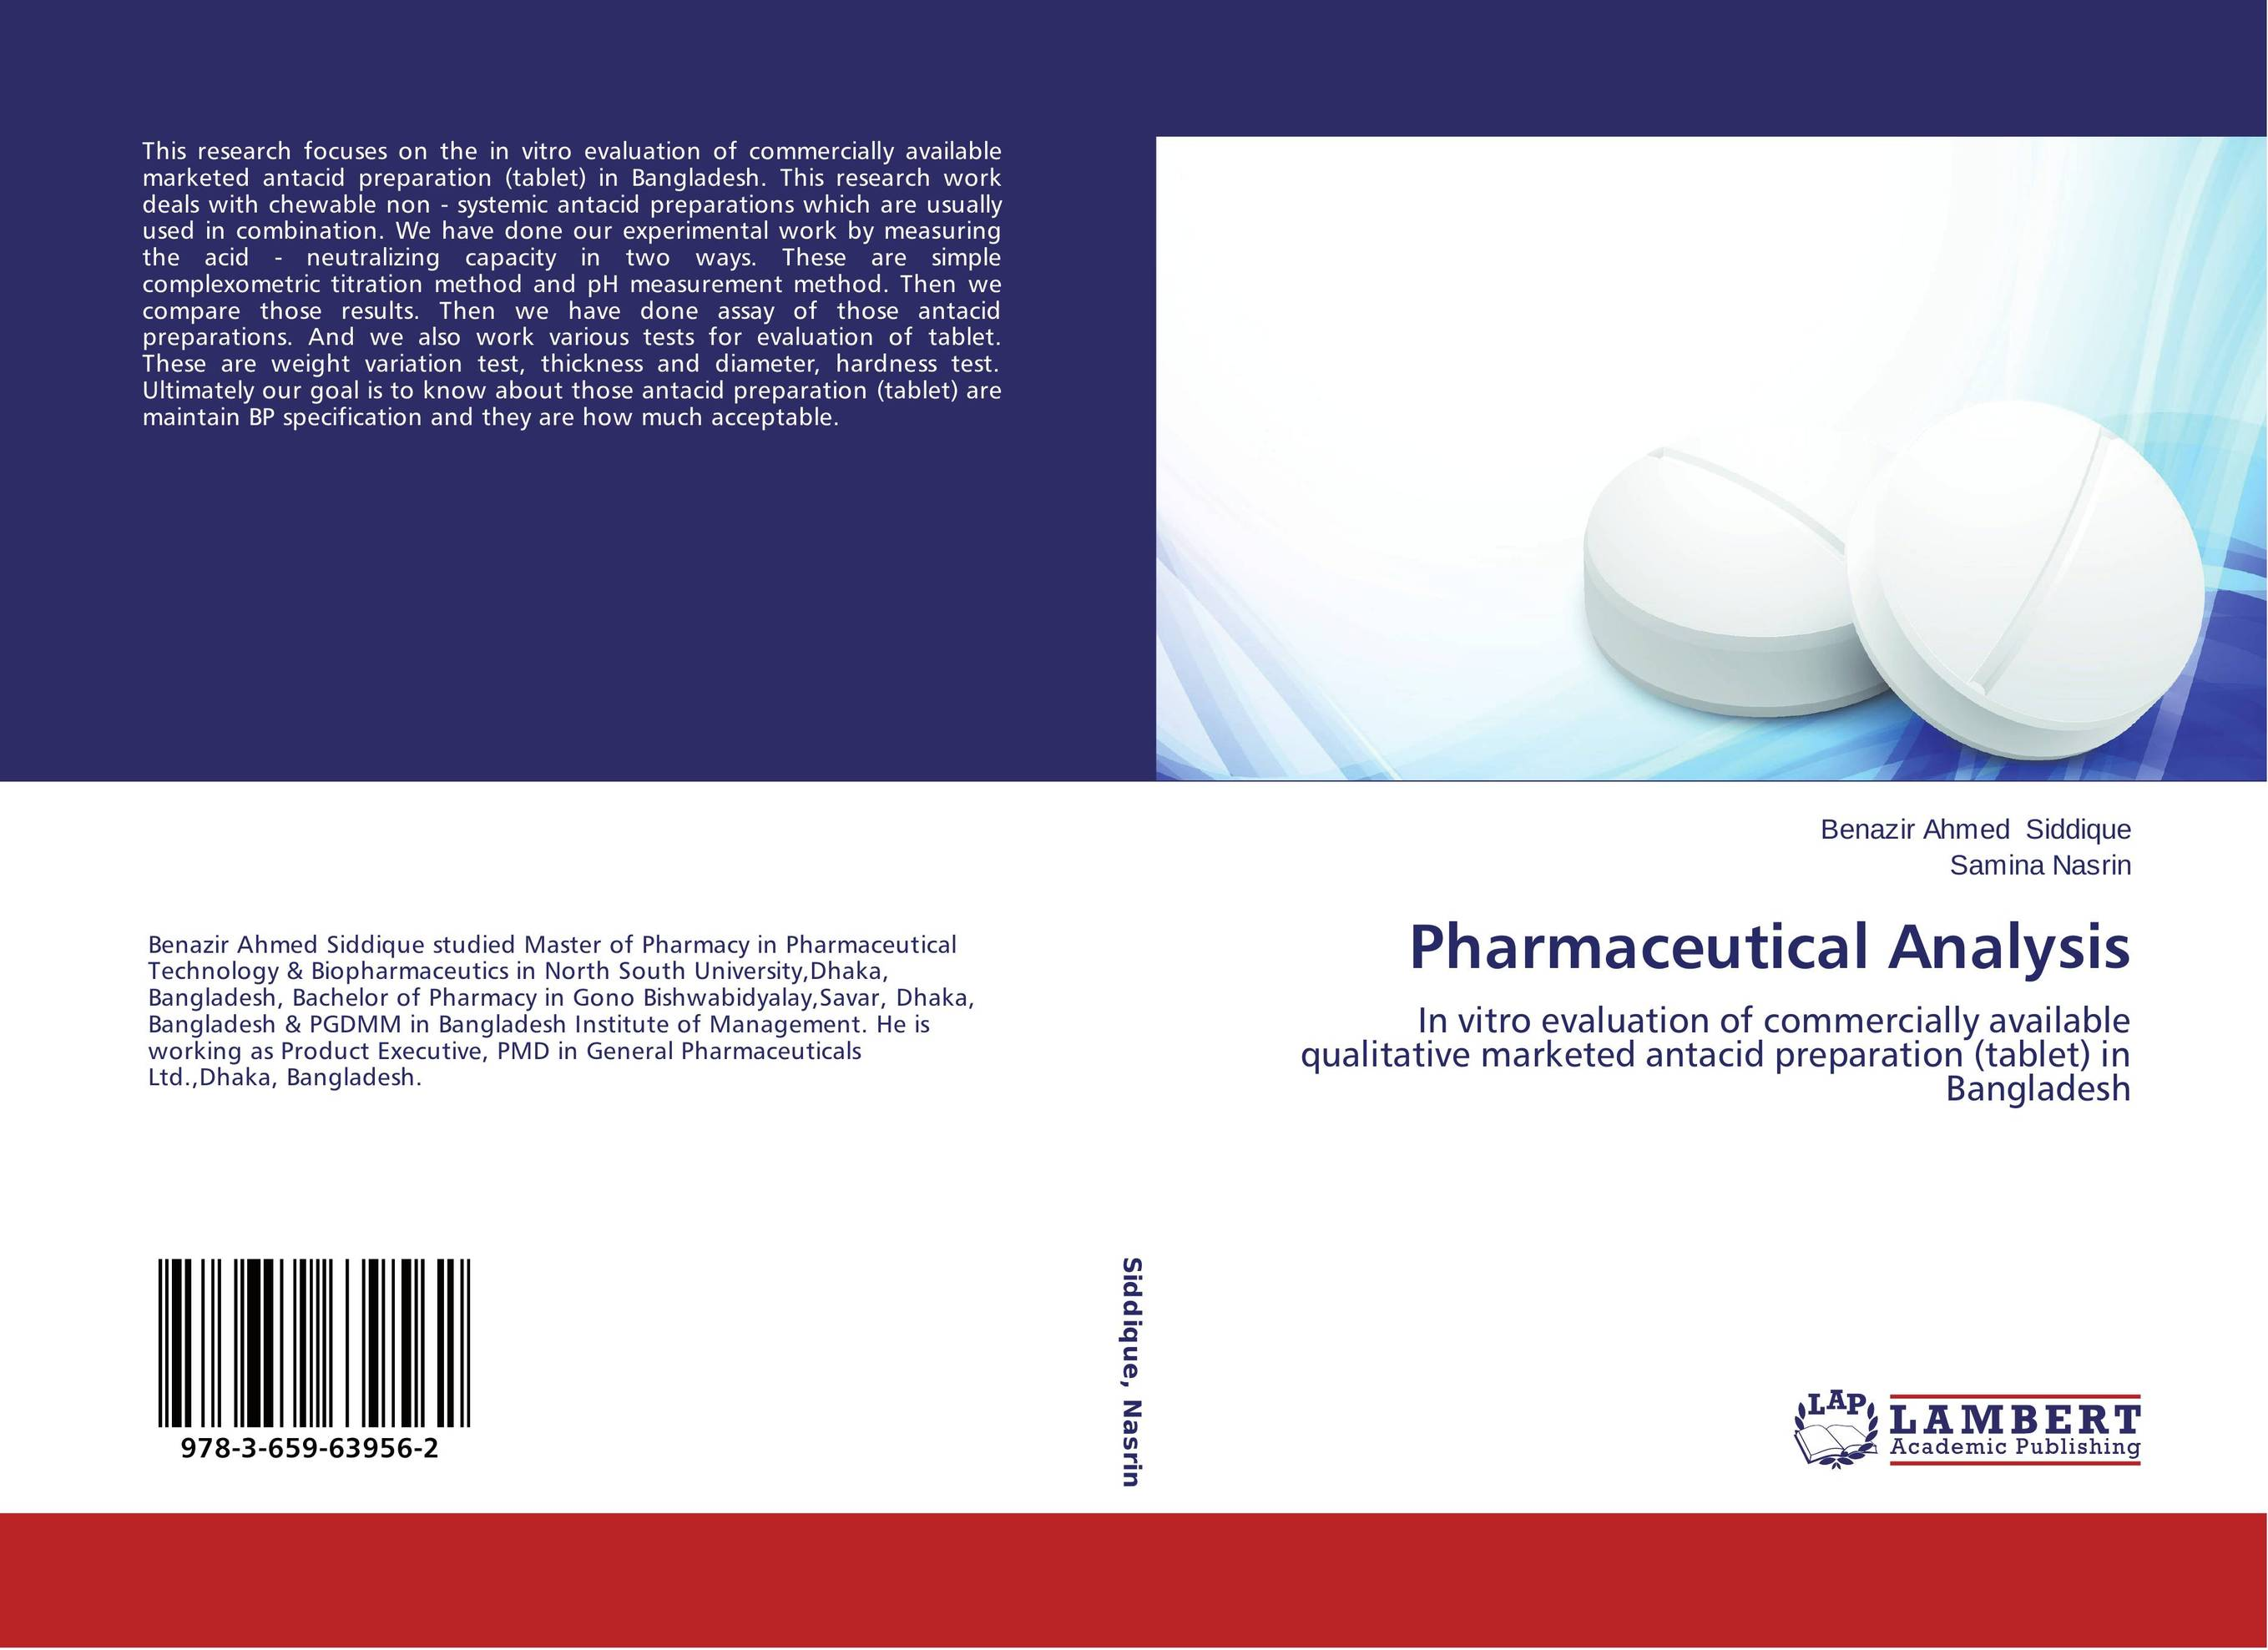 pharmaceutical market statistics in bangladesh The pharmaceutical industry in bangladesh is one of the most developed technology sectors within bangladesh manufacturers produce insulin, hormones, and cancer drugs this sector provides 97% of the total medicinal requirement of the local market.